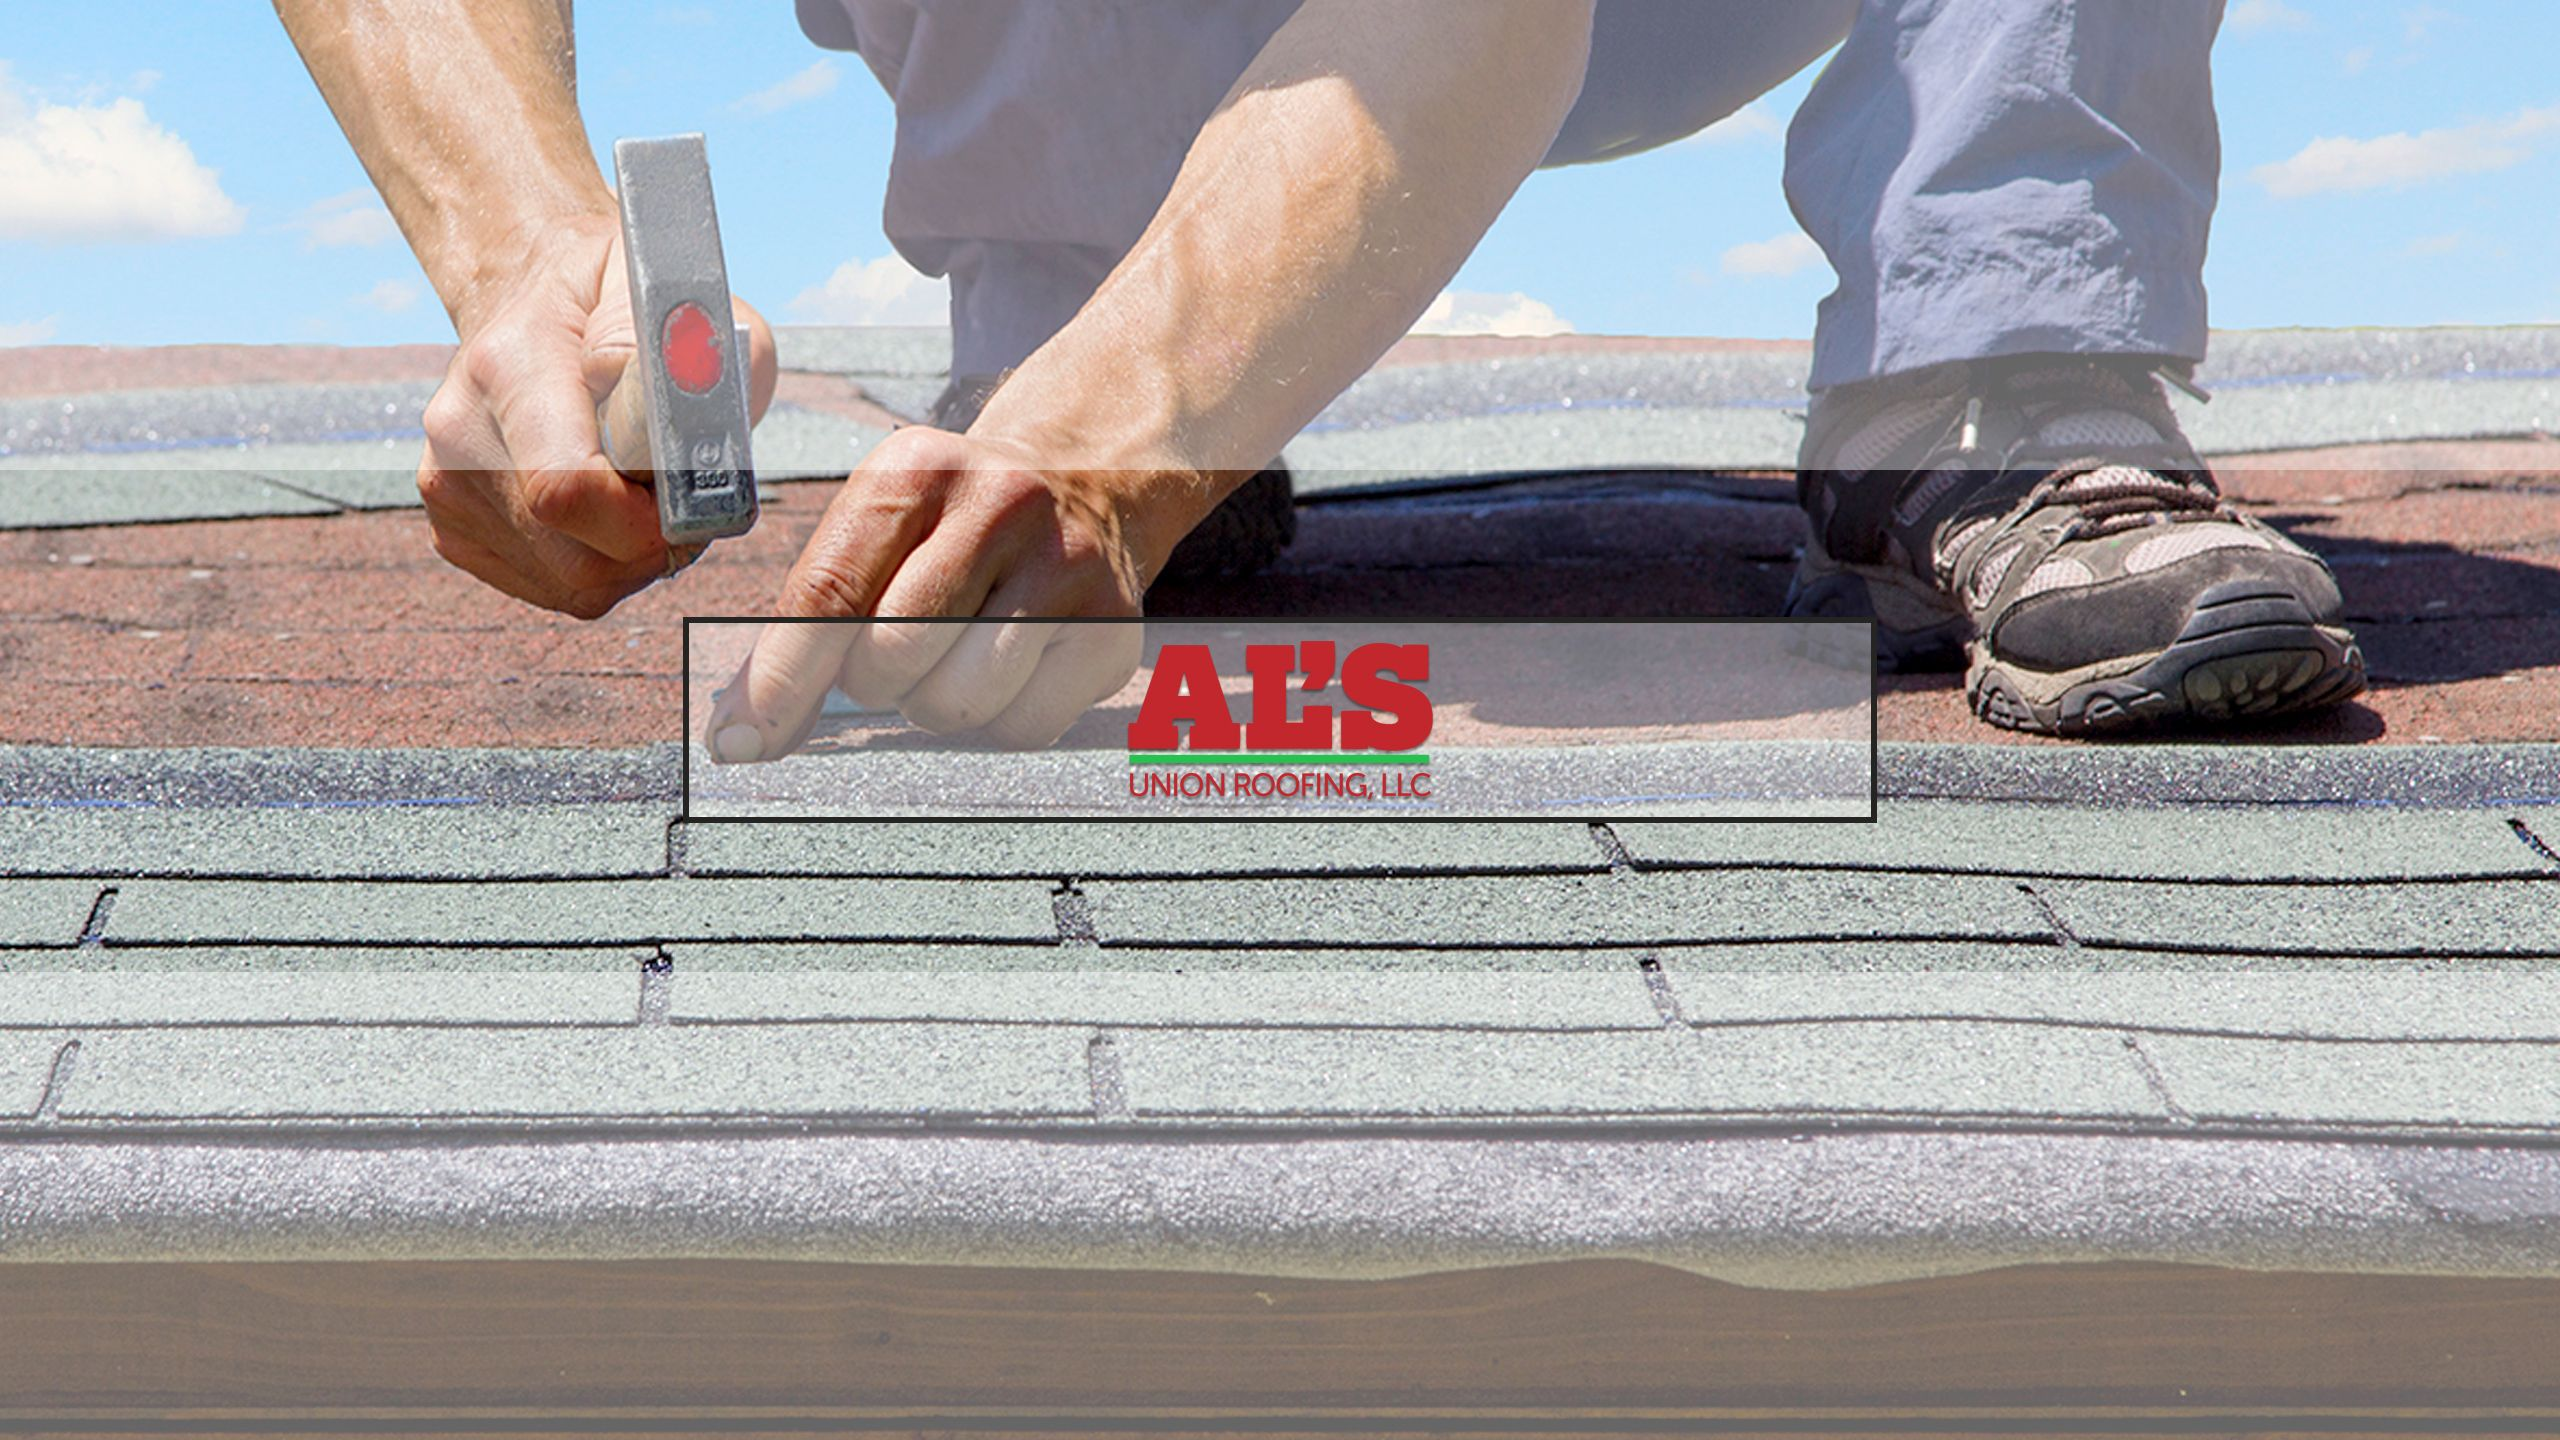 Al S Union Roofing Llc Is A Roofing Contractor In Philadelphia Pa We Offer Roofing Siding Windows And More Roofing Contractors Roofing Contractors